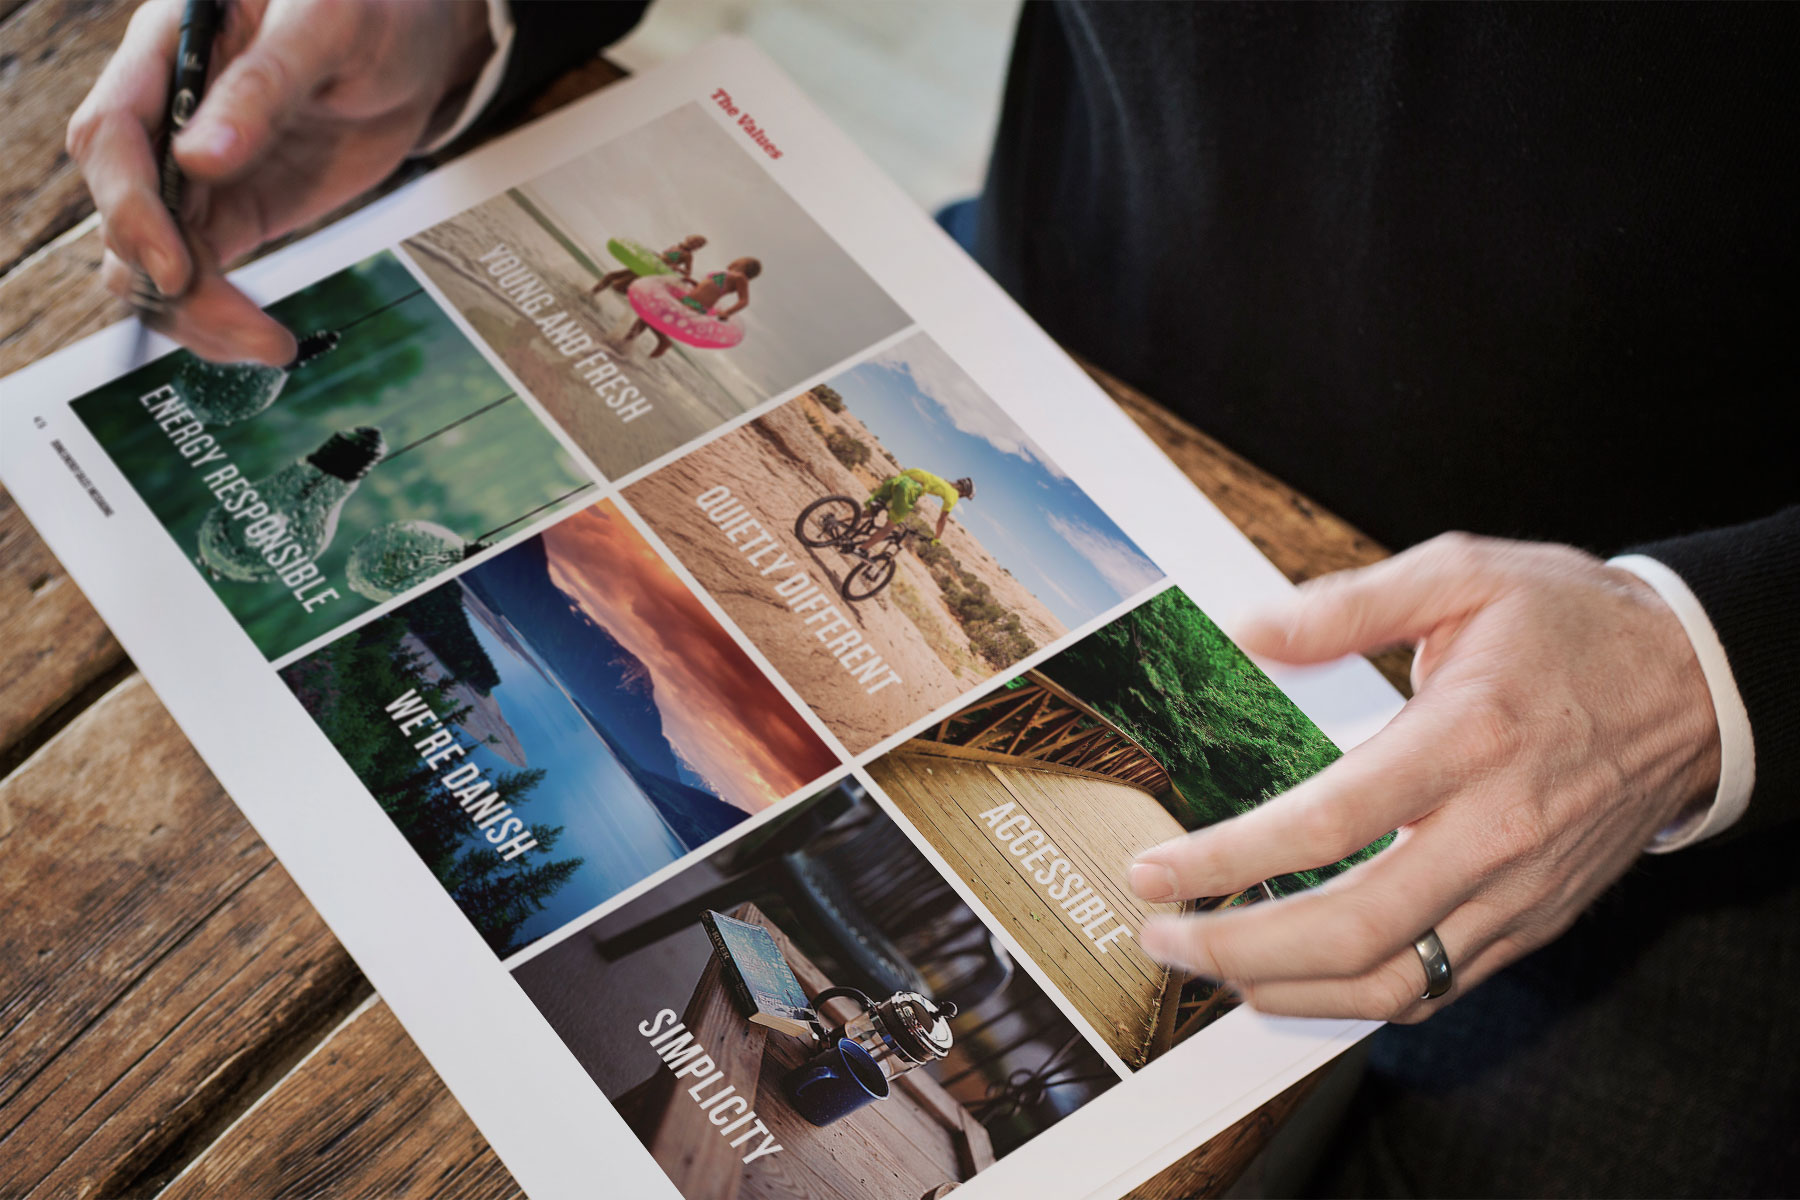 The development of the brand's identity began with research into its values. This research established six key themes.